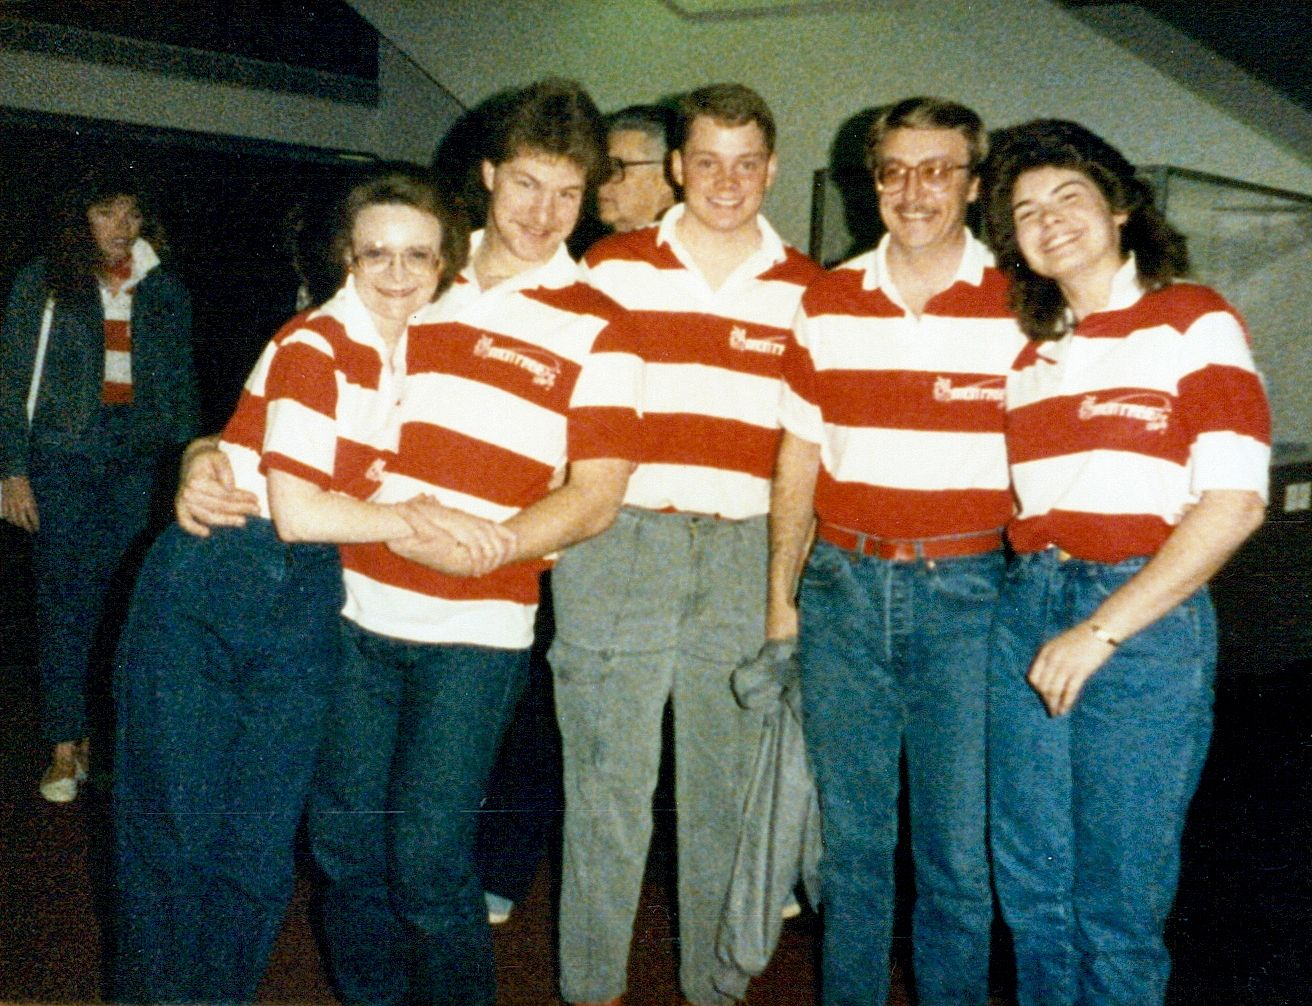 Group of five people in striped shirts.